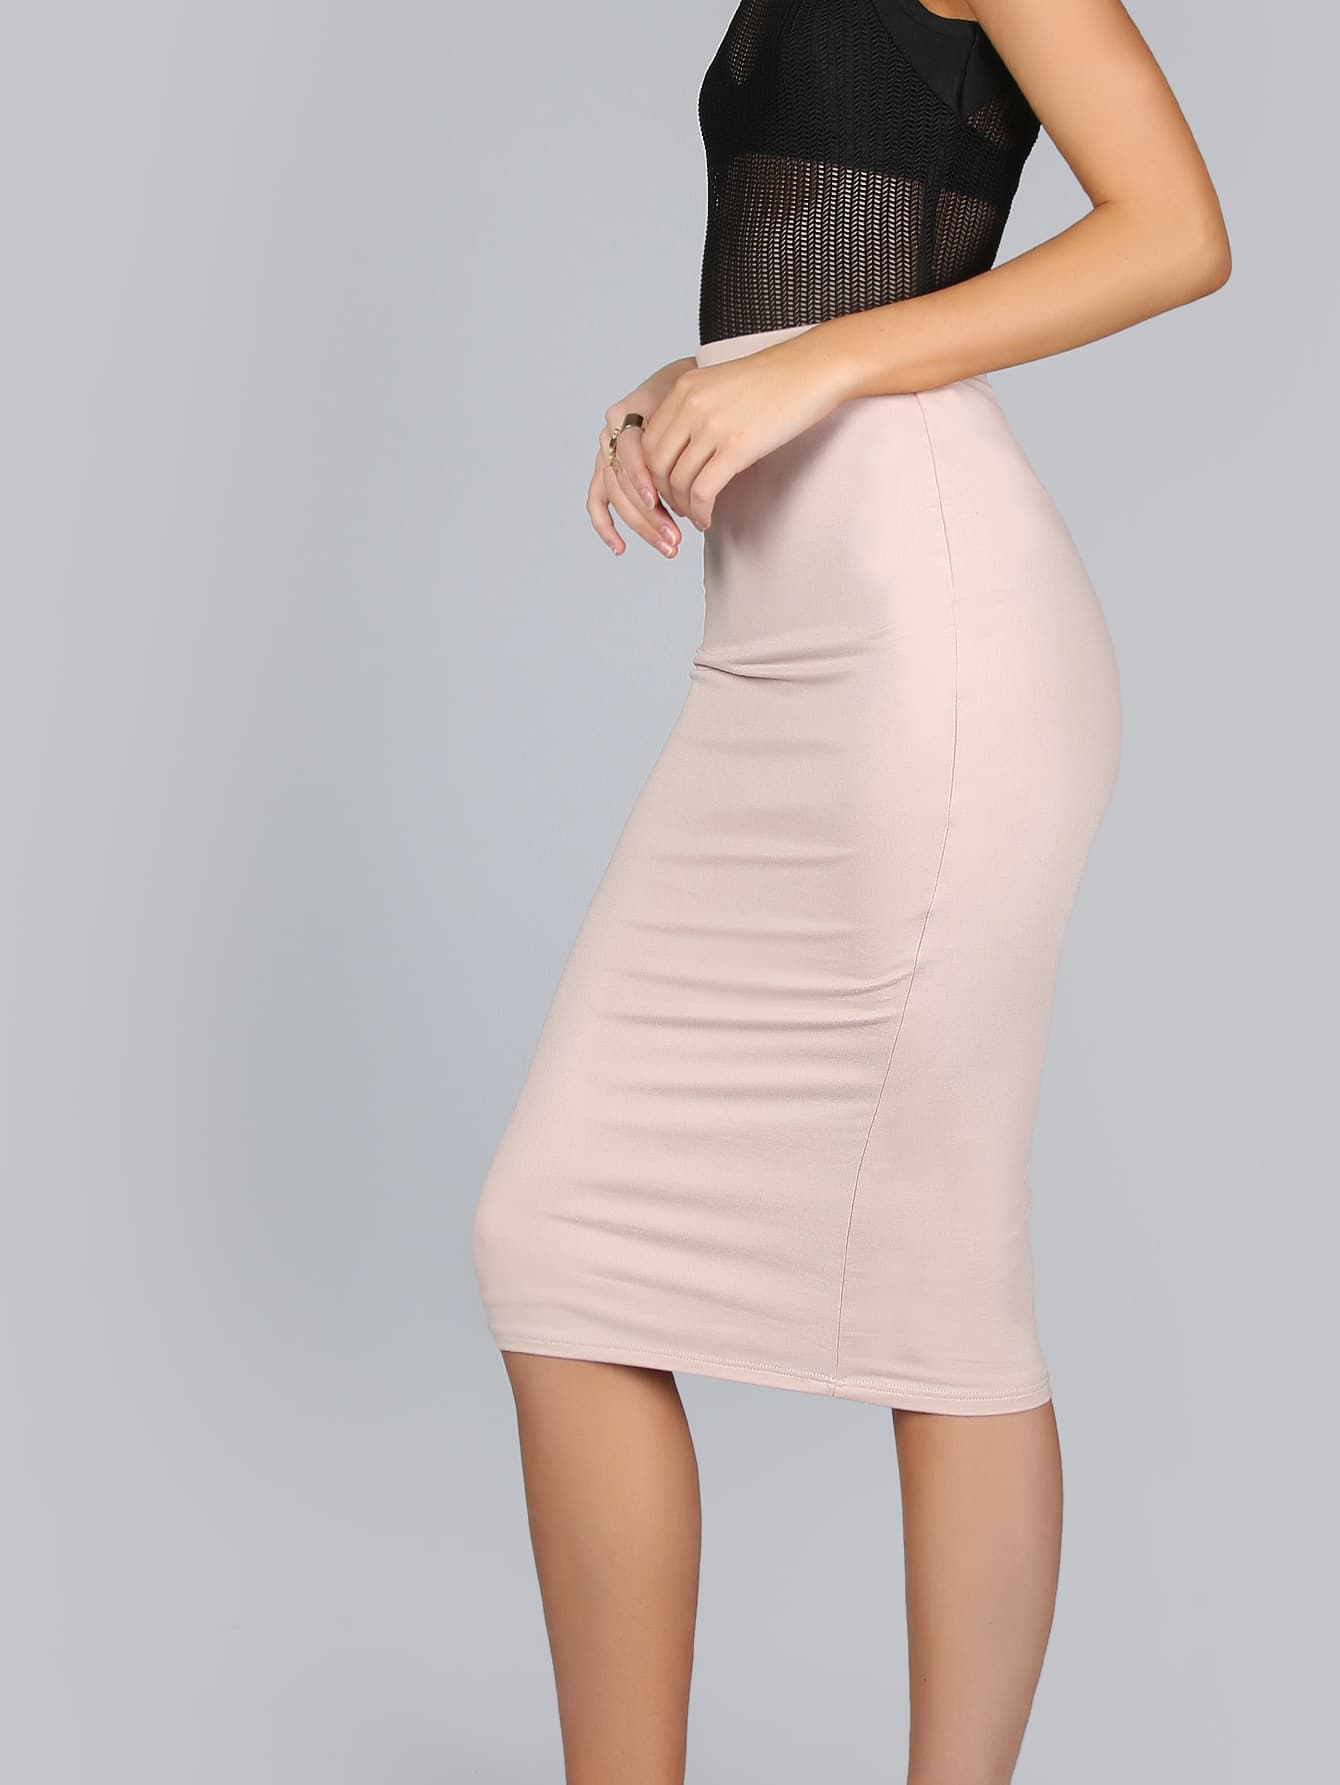 You searched for: jersey knit skirt! Etsy is the home to thousands of handmade, vintage, and one-of-a-kind products and gifts related to your search. No matter what you're looking for or where you are in the world, our global marketplace of sellers can help you find unique and affordable options. Let's get started!